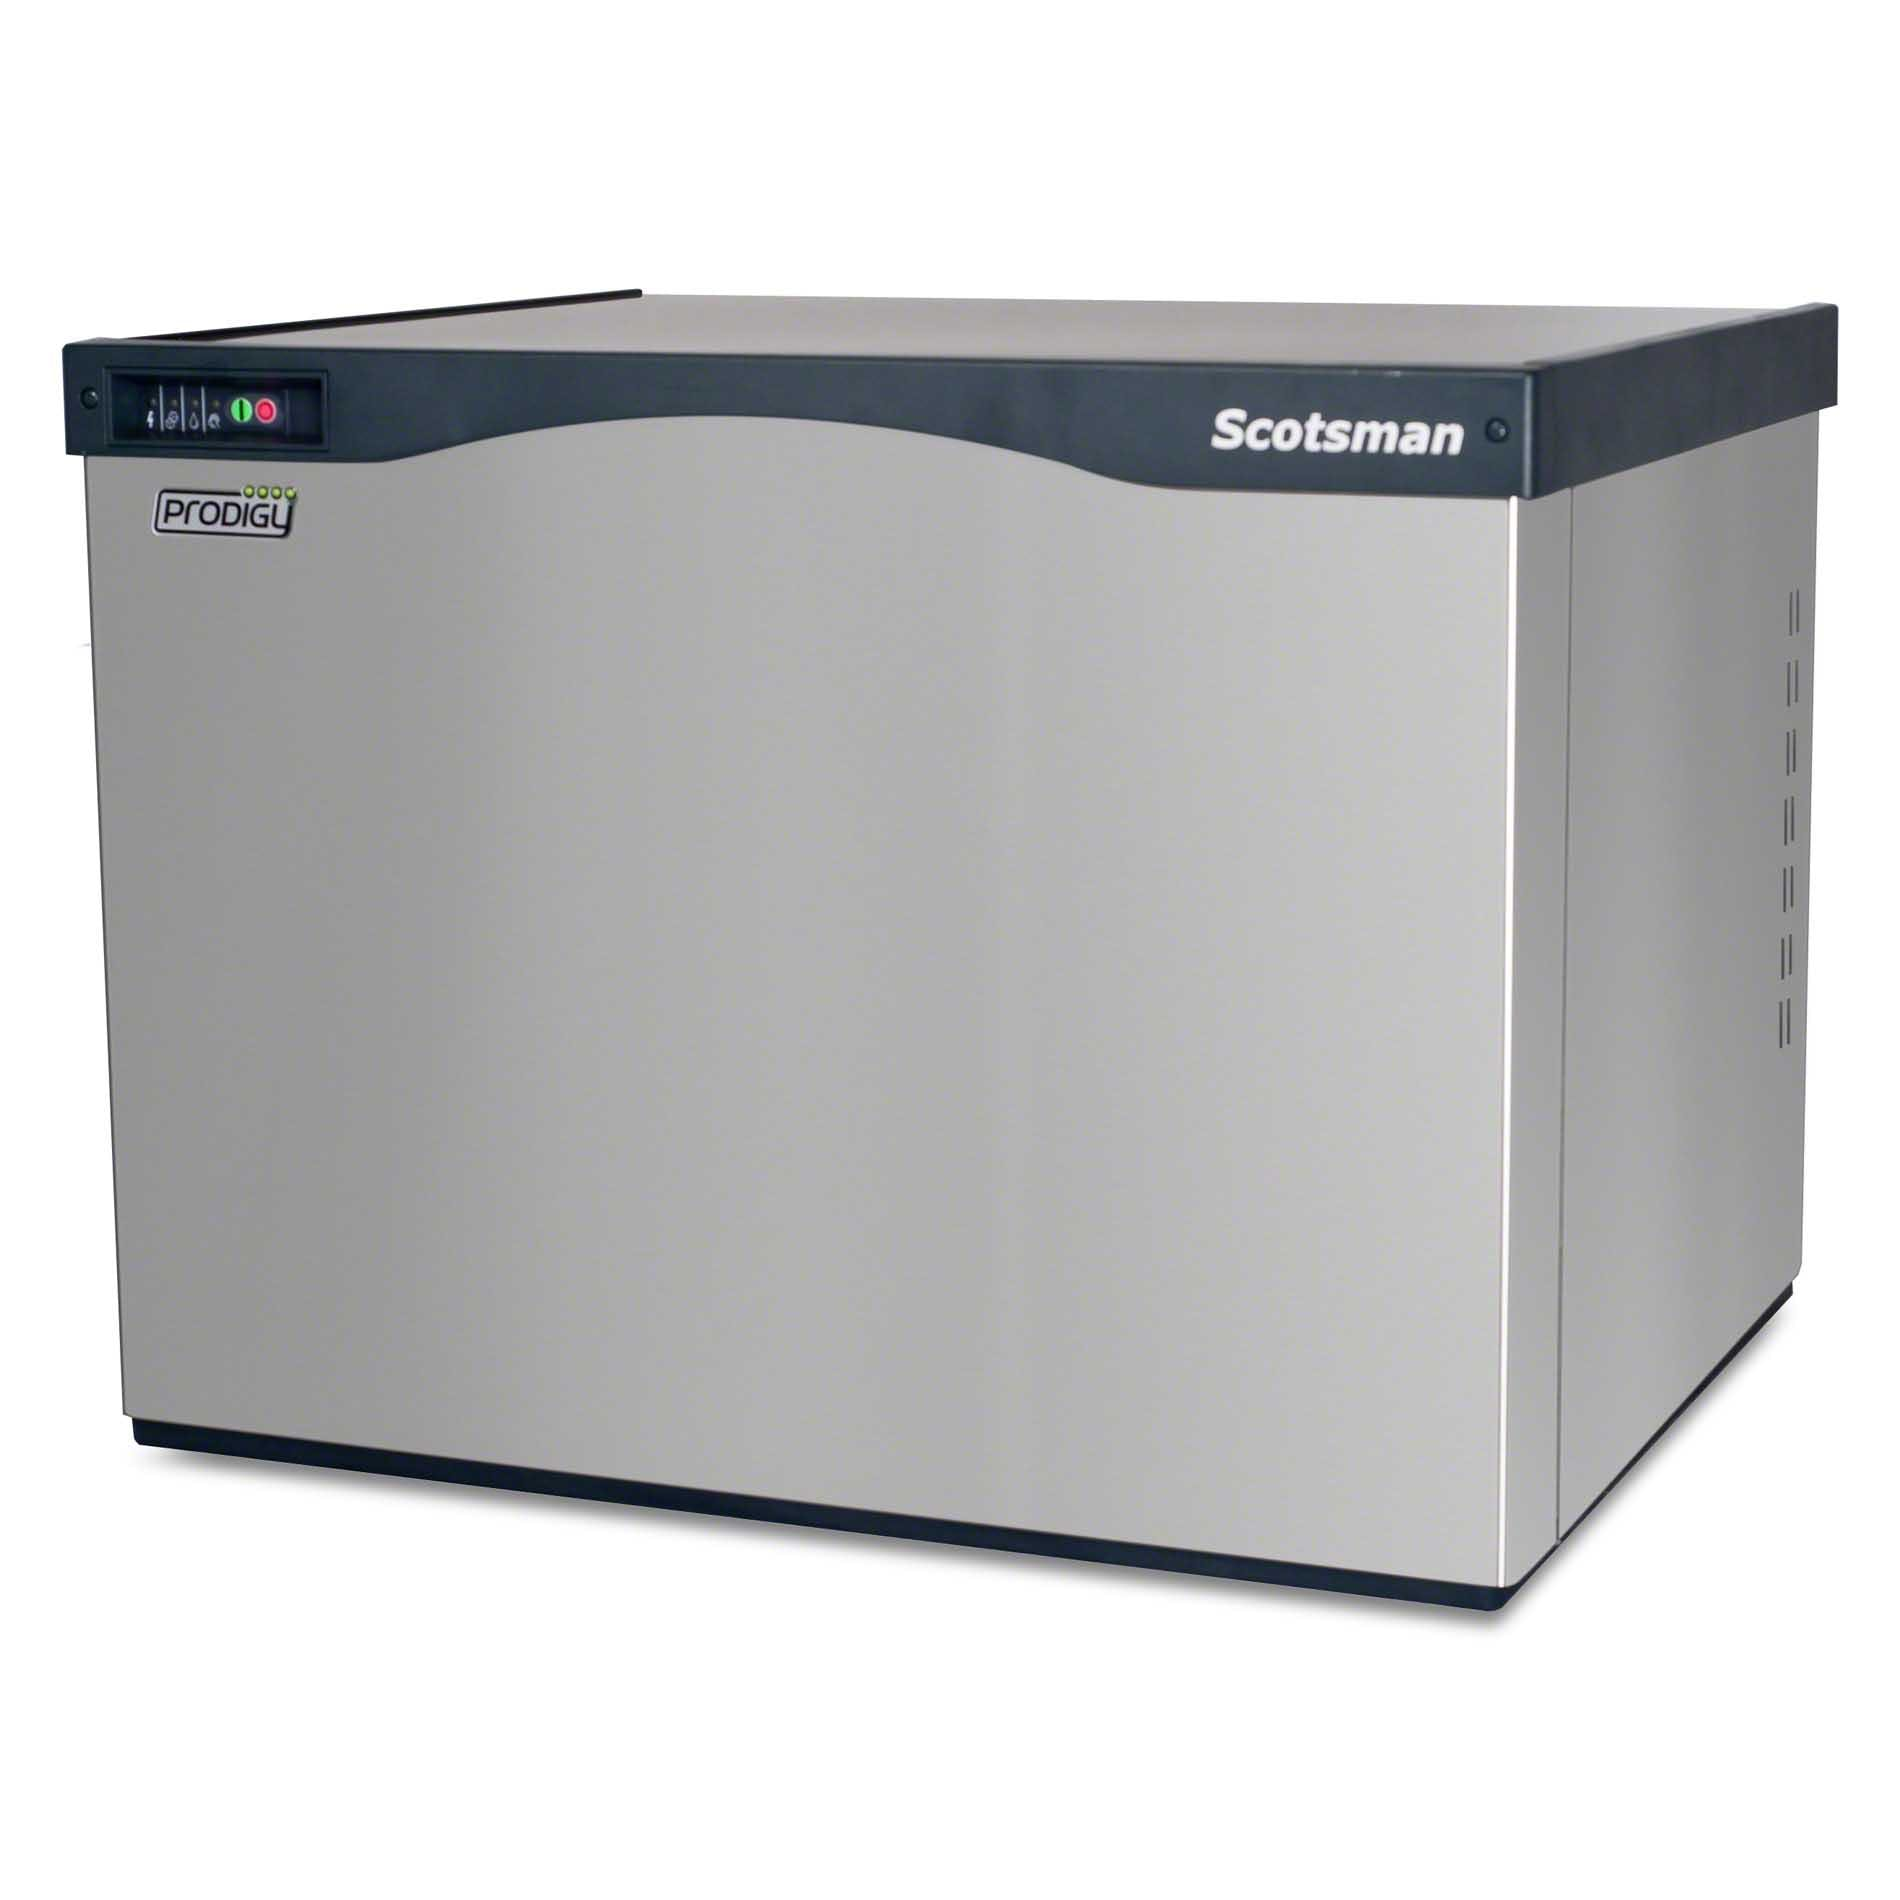 Scotsman - C0330SA-32A 350 lb Half Size Cube Ice Machine - Prodigy Series - sold by Food Service Warehouse